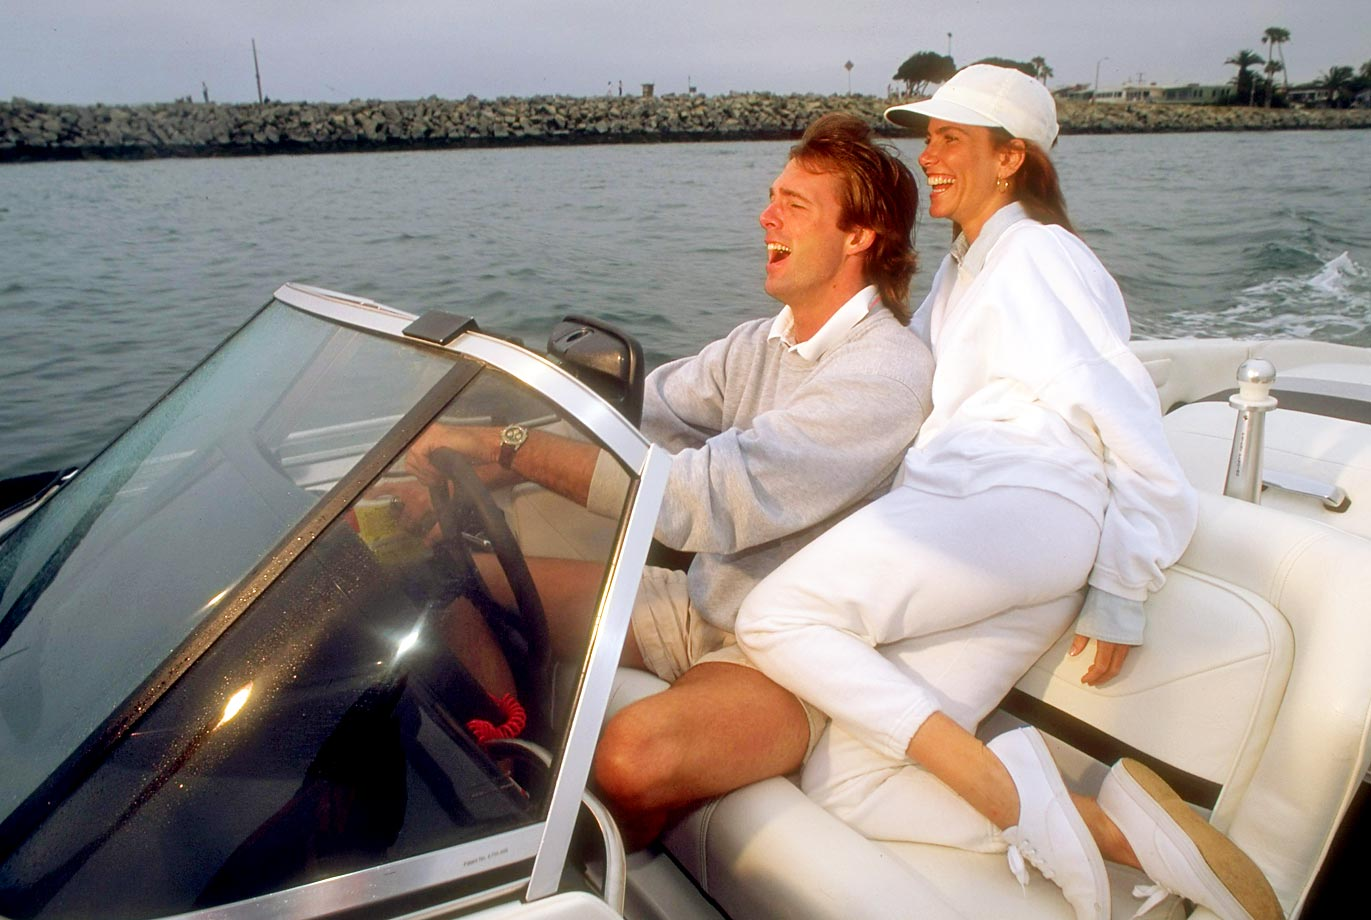 The Angels' pitcher cruises in a motorboat with his girlfriend, White Snake video girl Tawny Kitaen. They were married from 1997 to 2002, but Finley filed for divorce three days after Kitaen was arrested for domestic abuse.